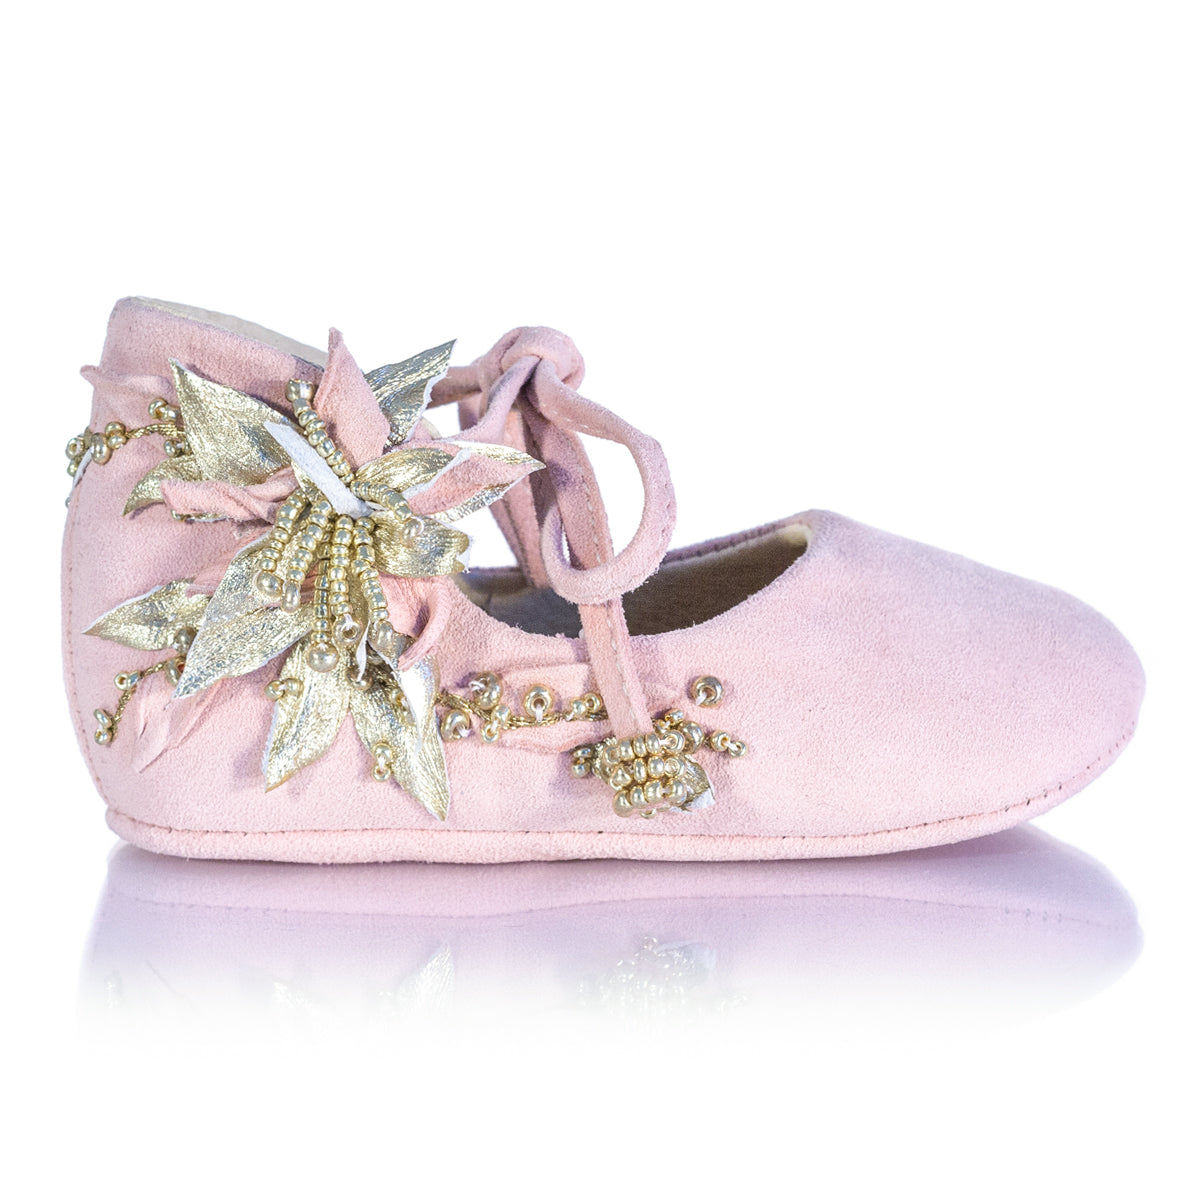 Vibys-Baby-Shoes-Water-Lily-Pink-side-view